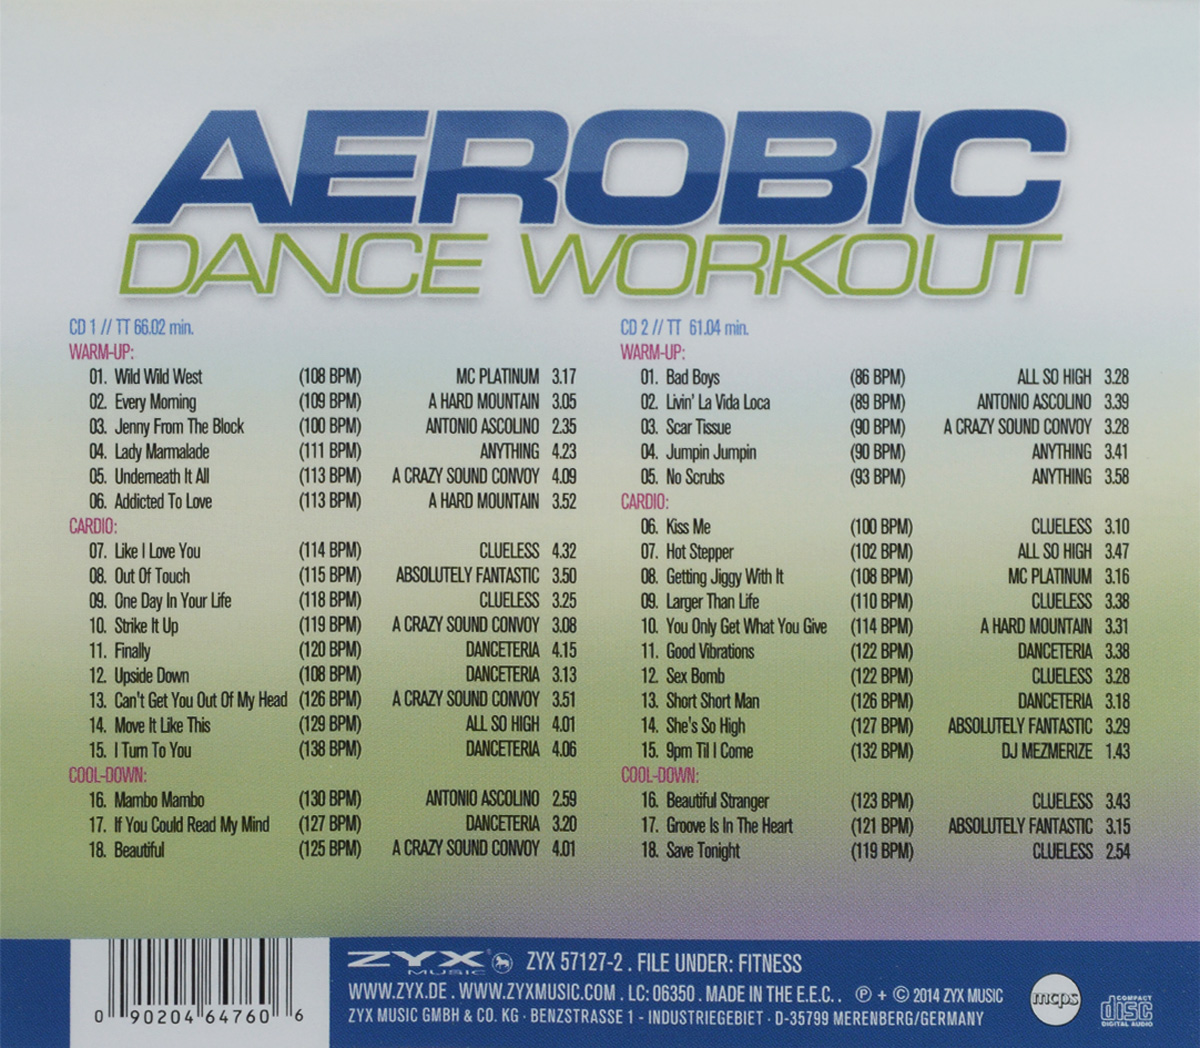 Aerobic Dance Workout (2 CD) Волтэкс-инвест,ZYX Music